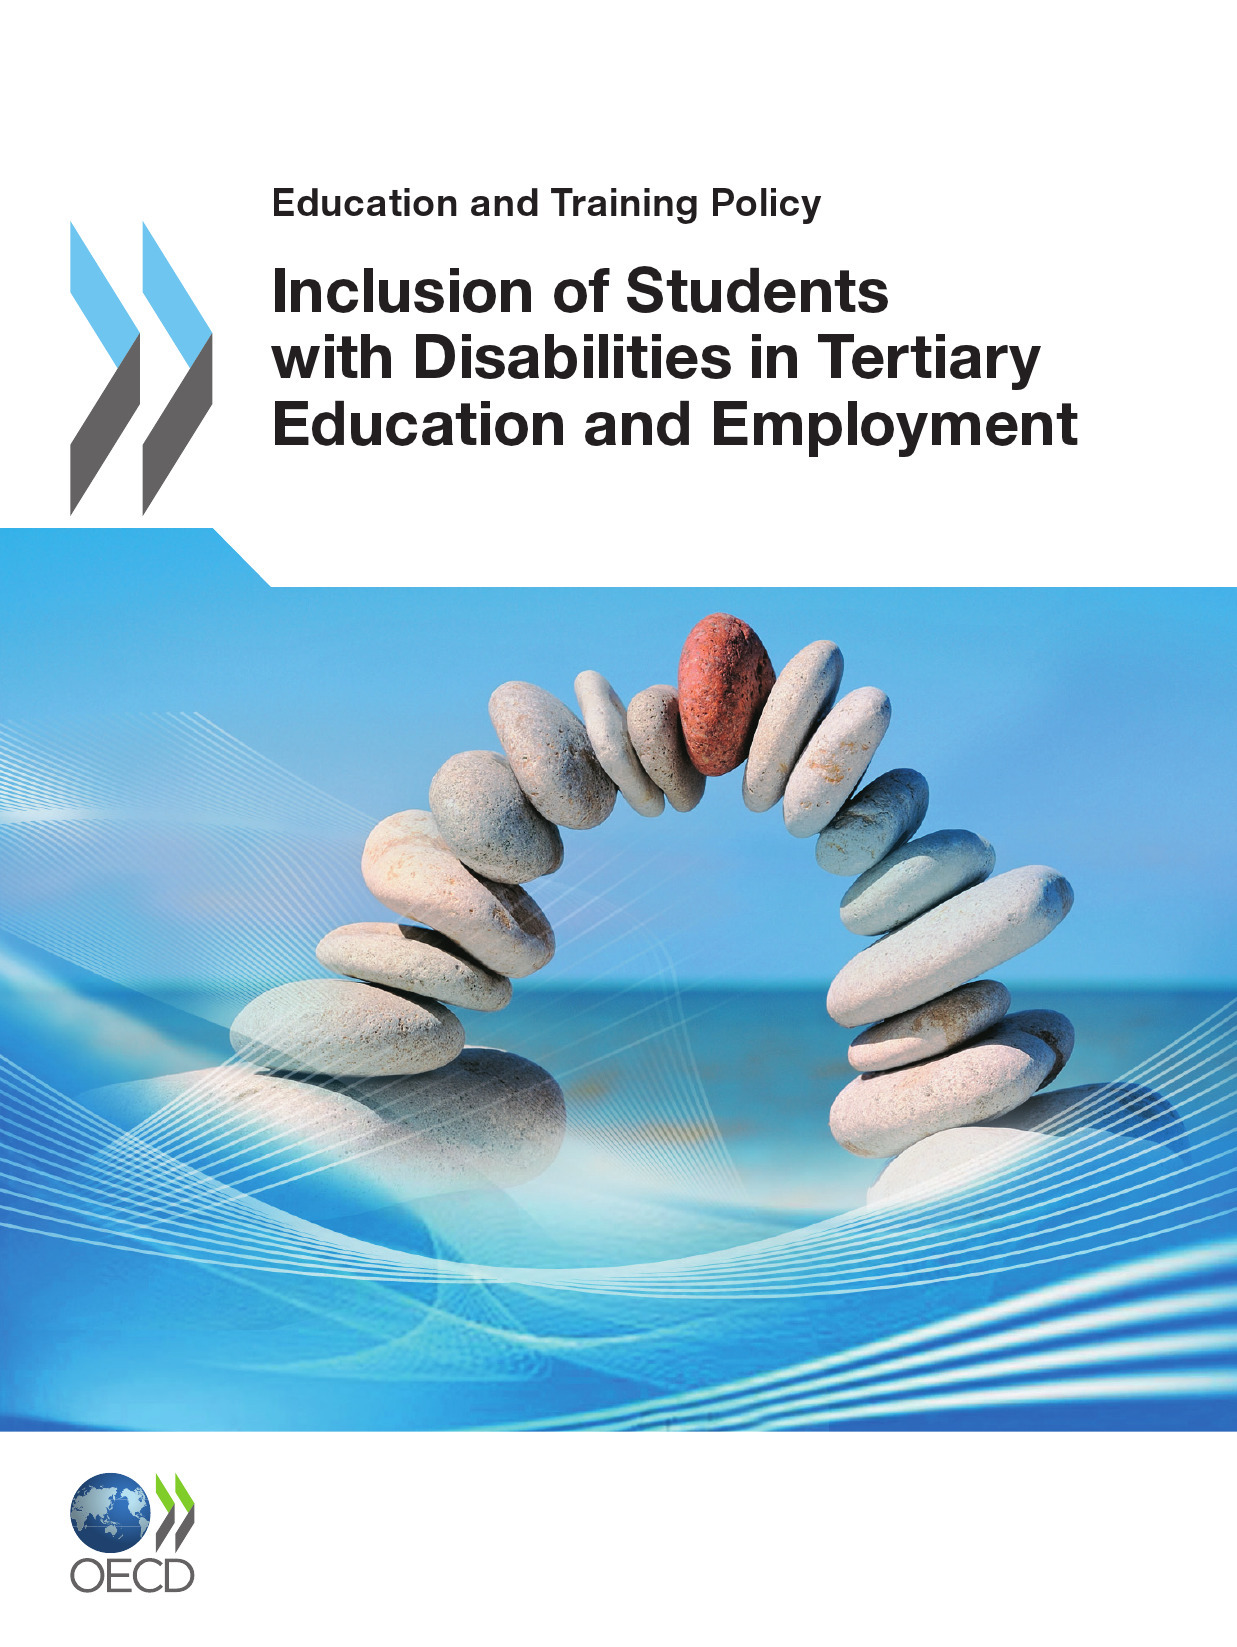 Inclusion of Students with Disabilities in Tertiary Education and Employment